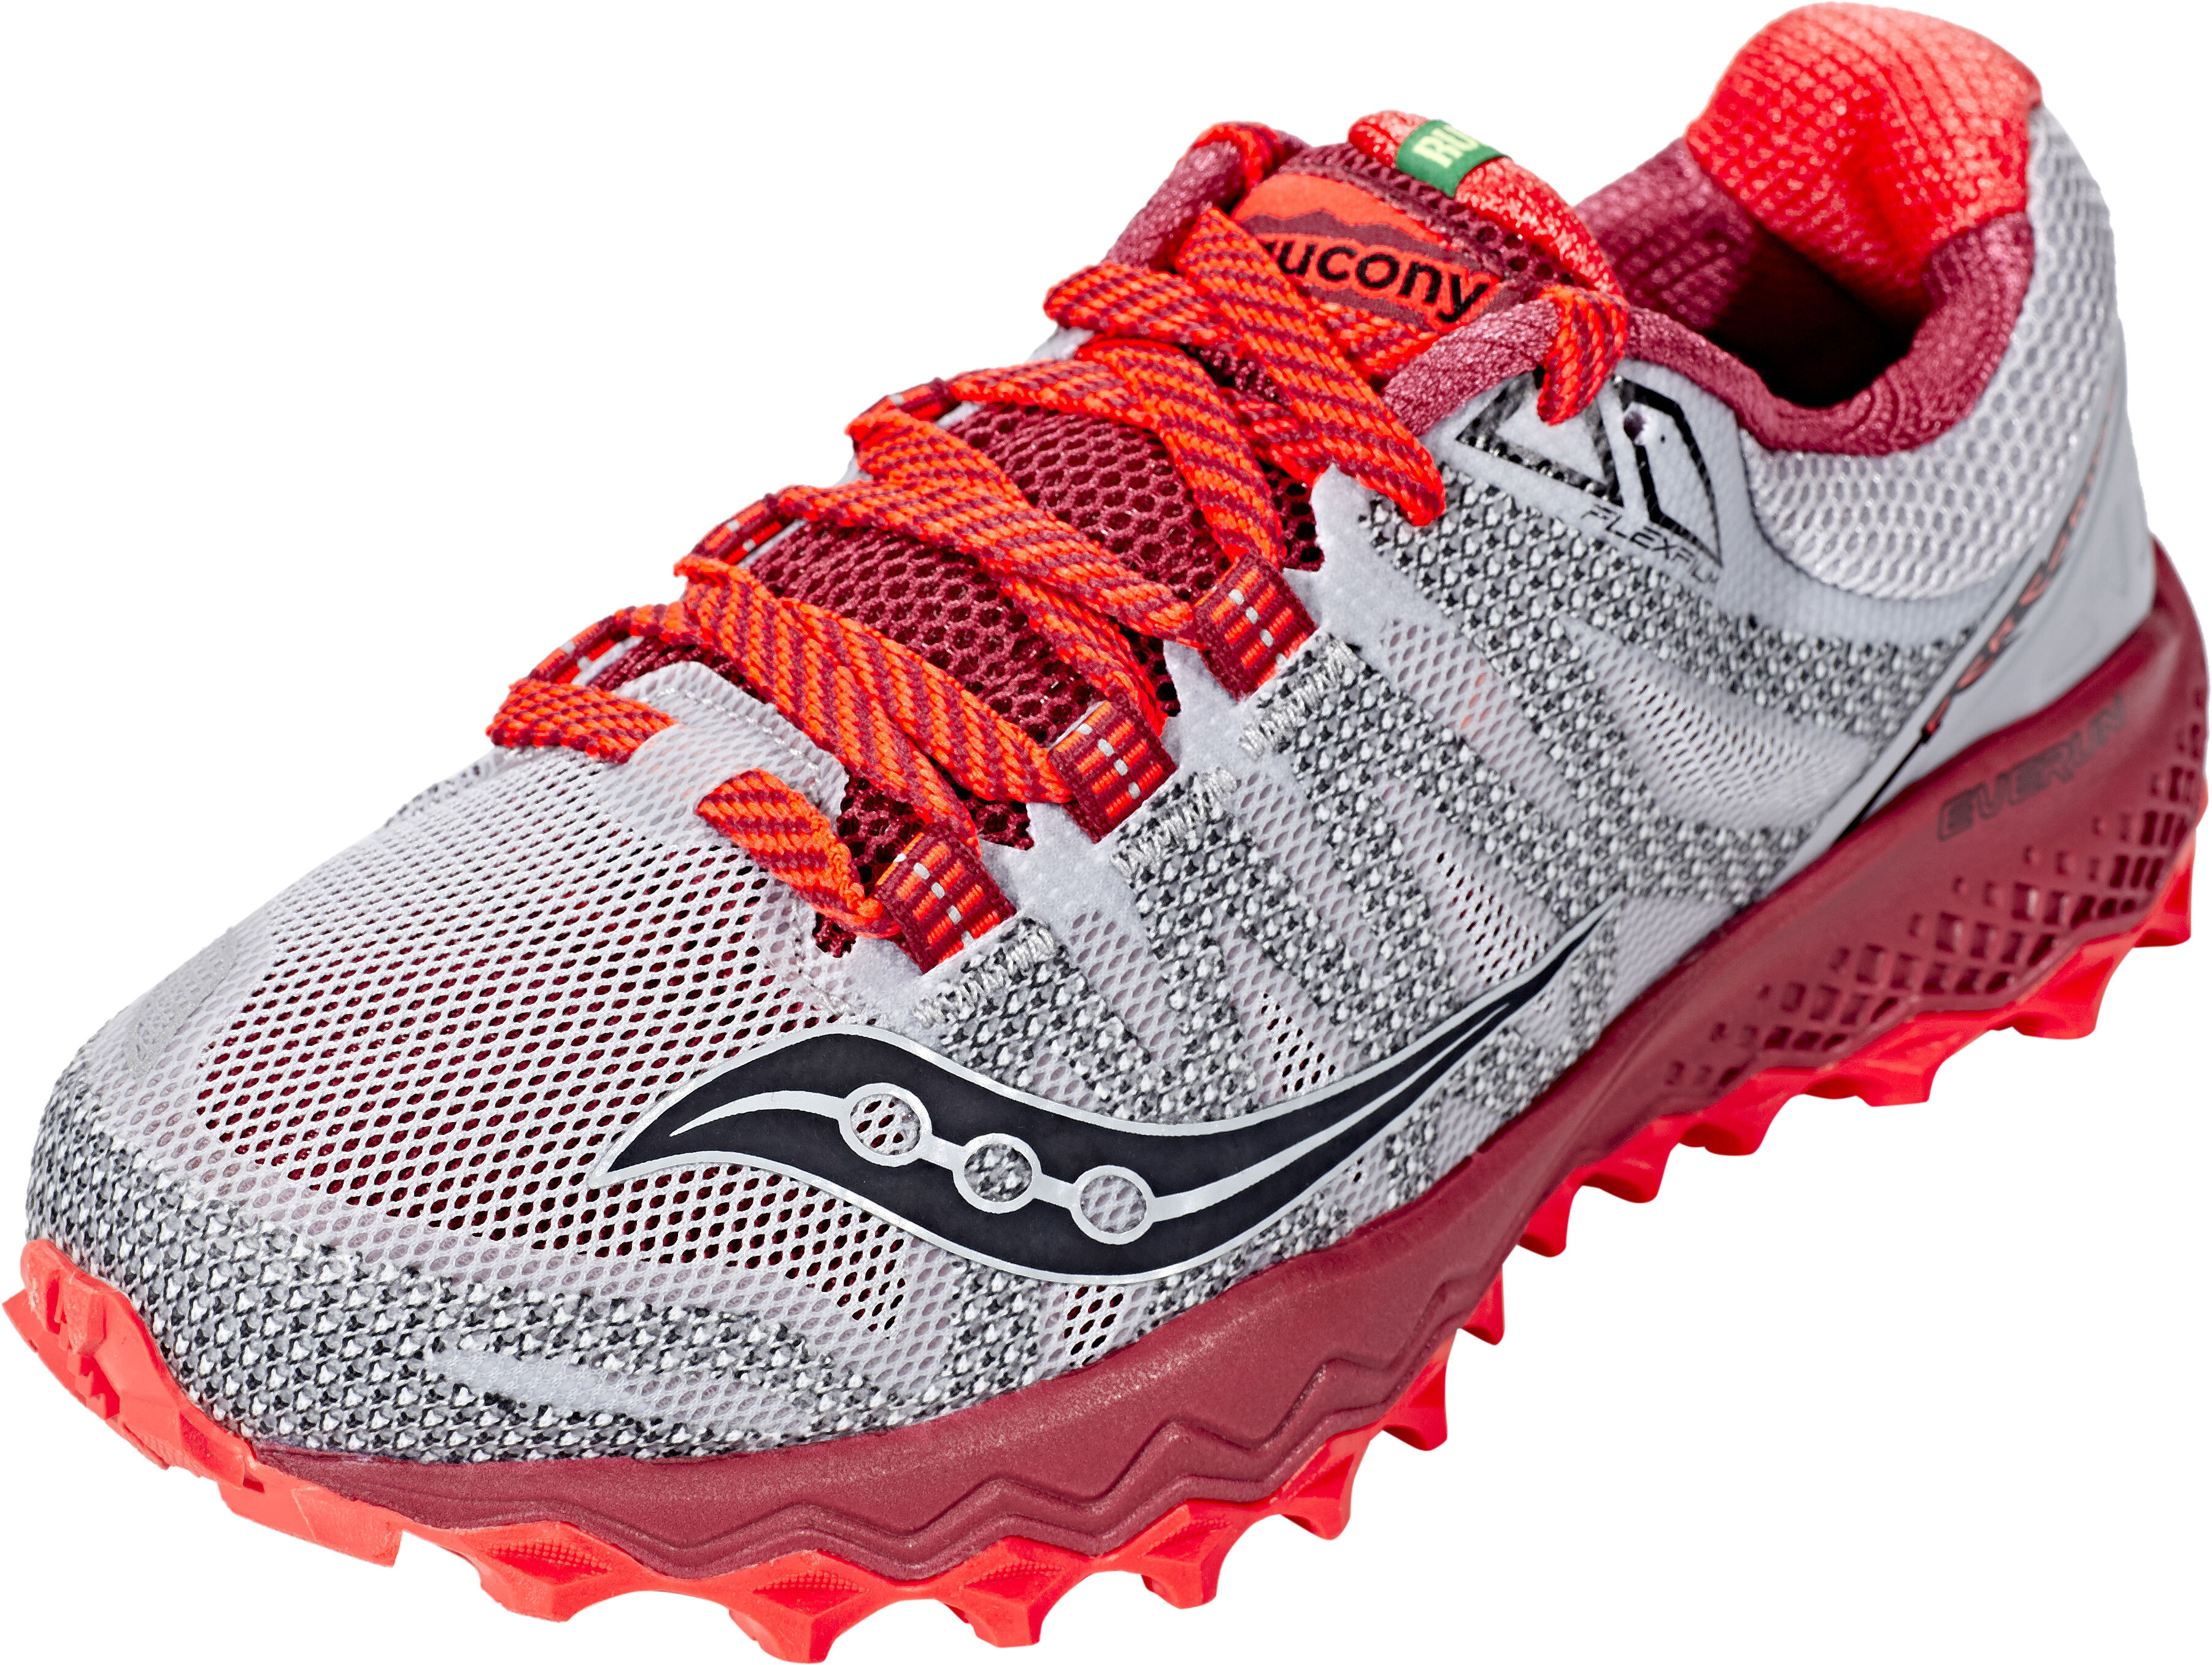 saucony Peregrine 7 Running Shoes Women grey red at Bikester.co.uk a2e5ac21ba9